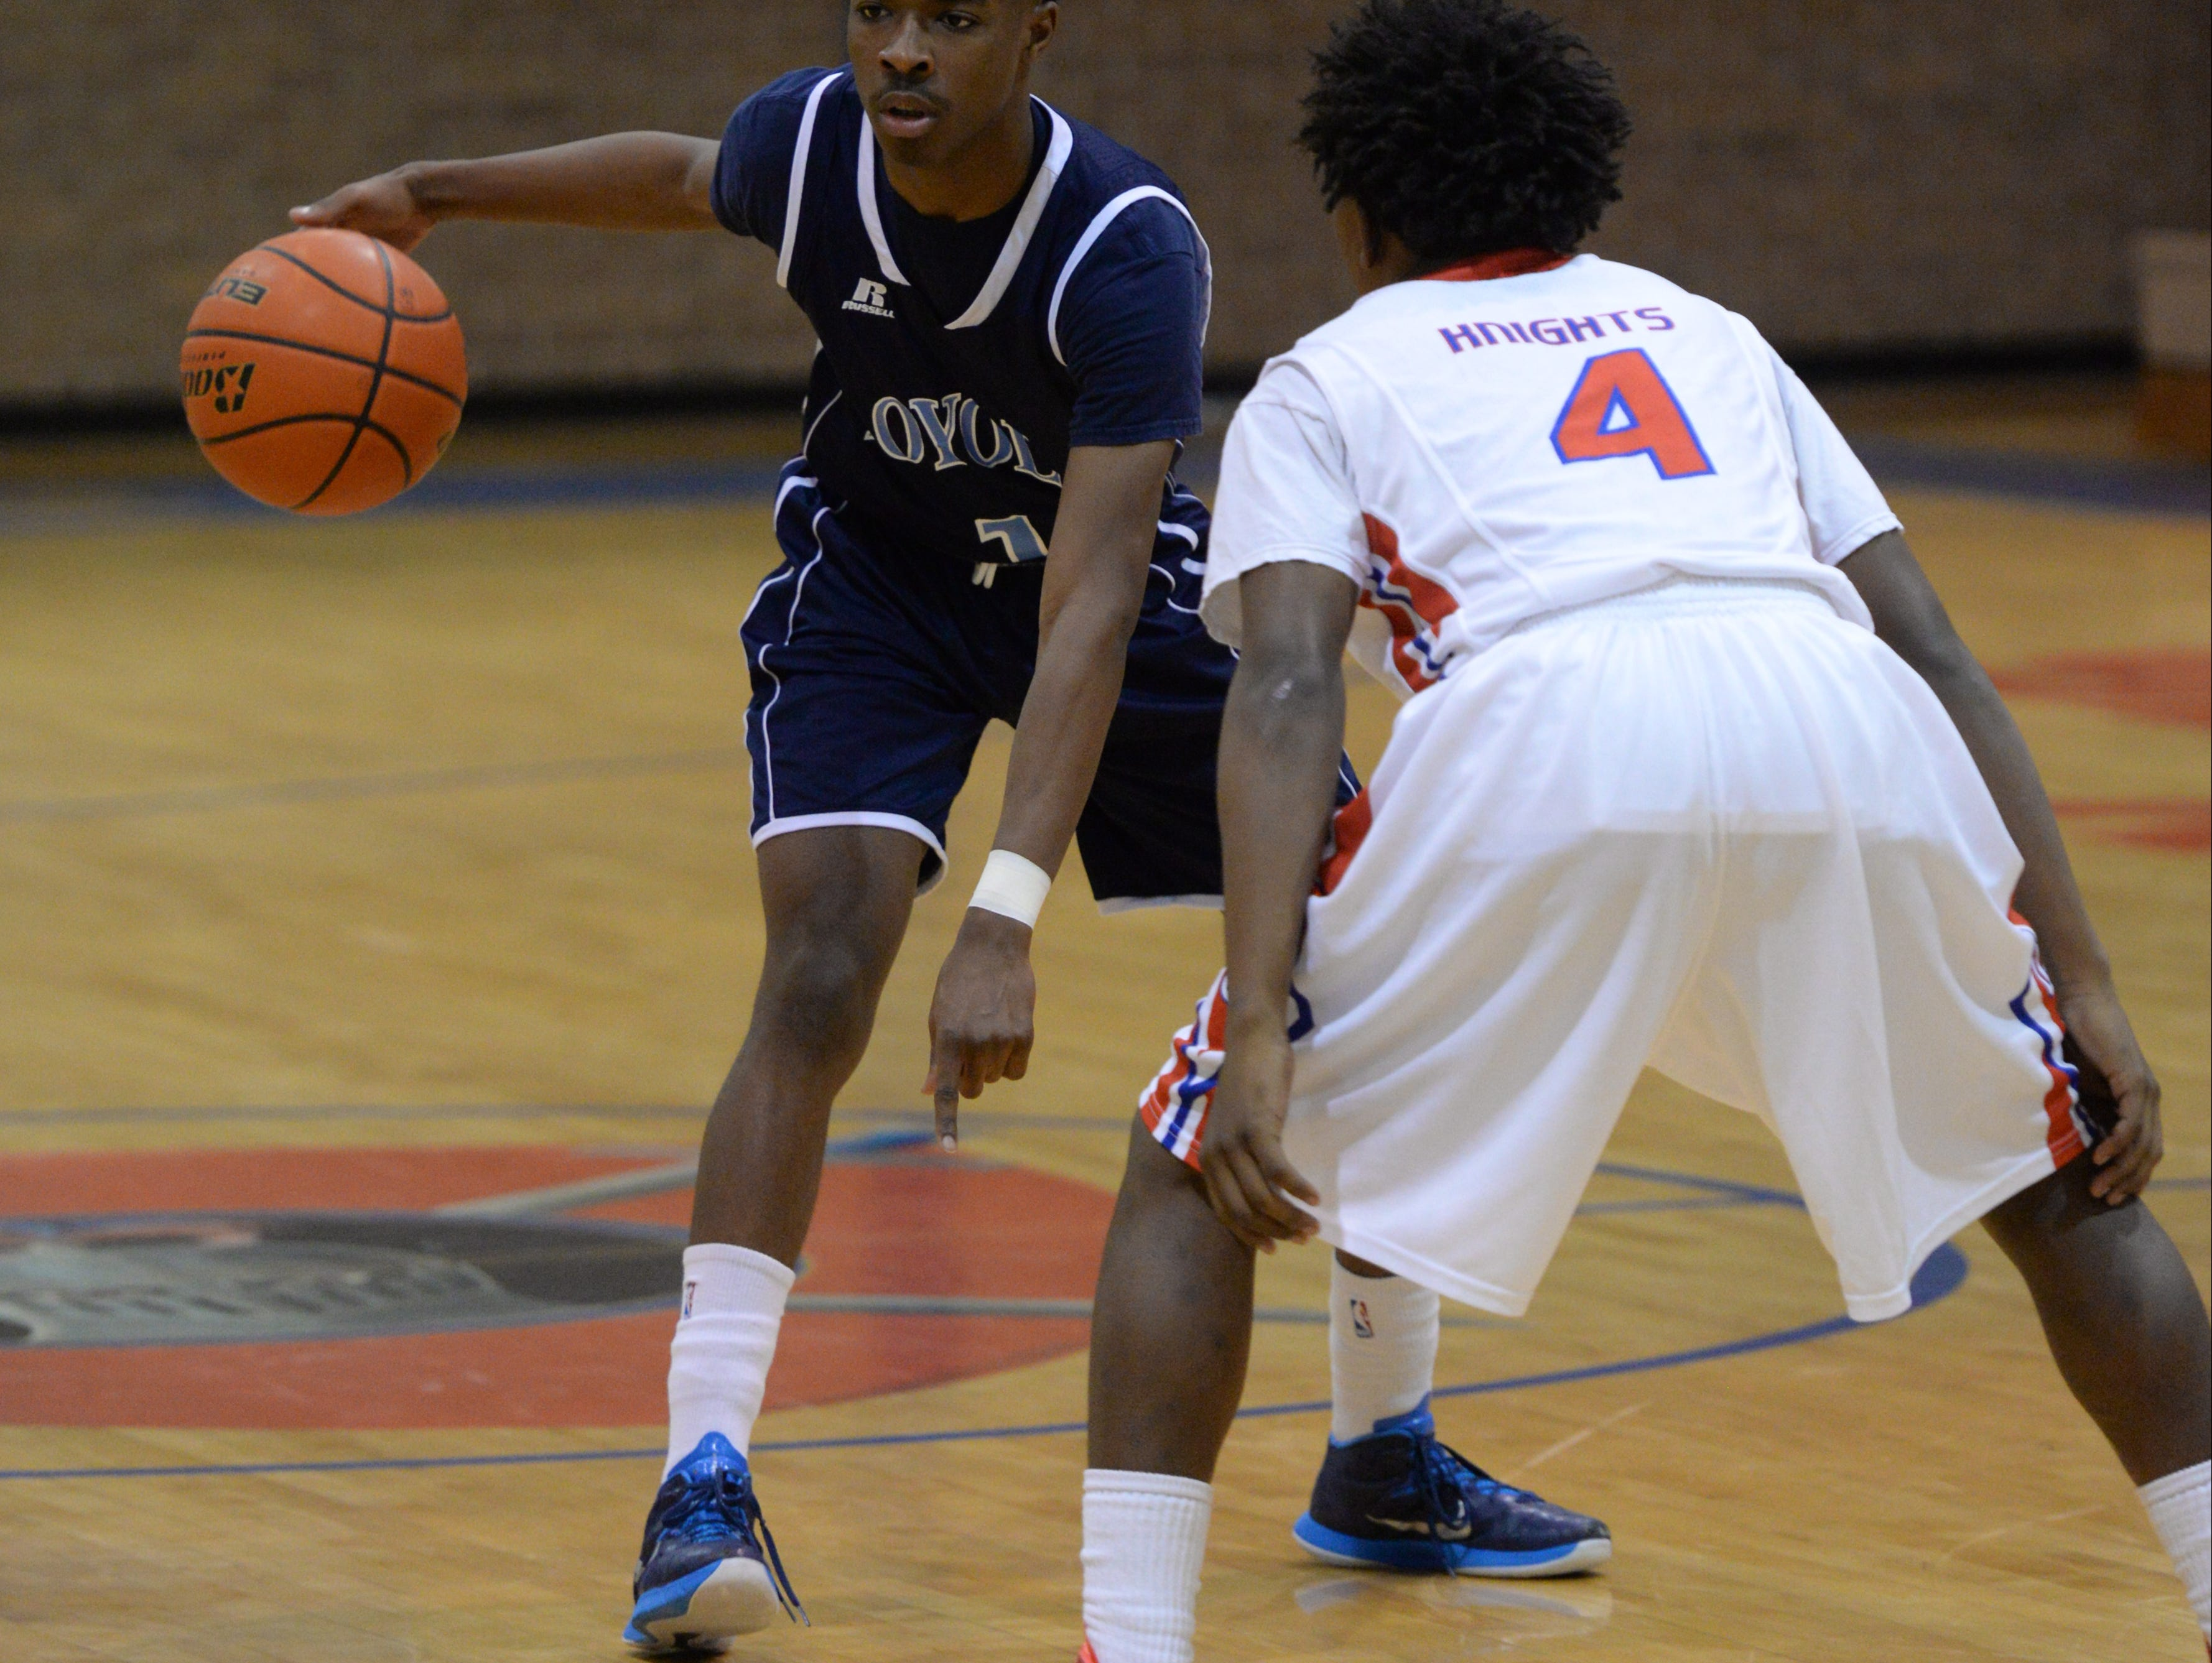 Loyola's Tony Dorsey motions to a teammate while being guarded by Woodlawn's Cam Moore.